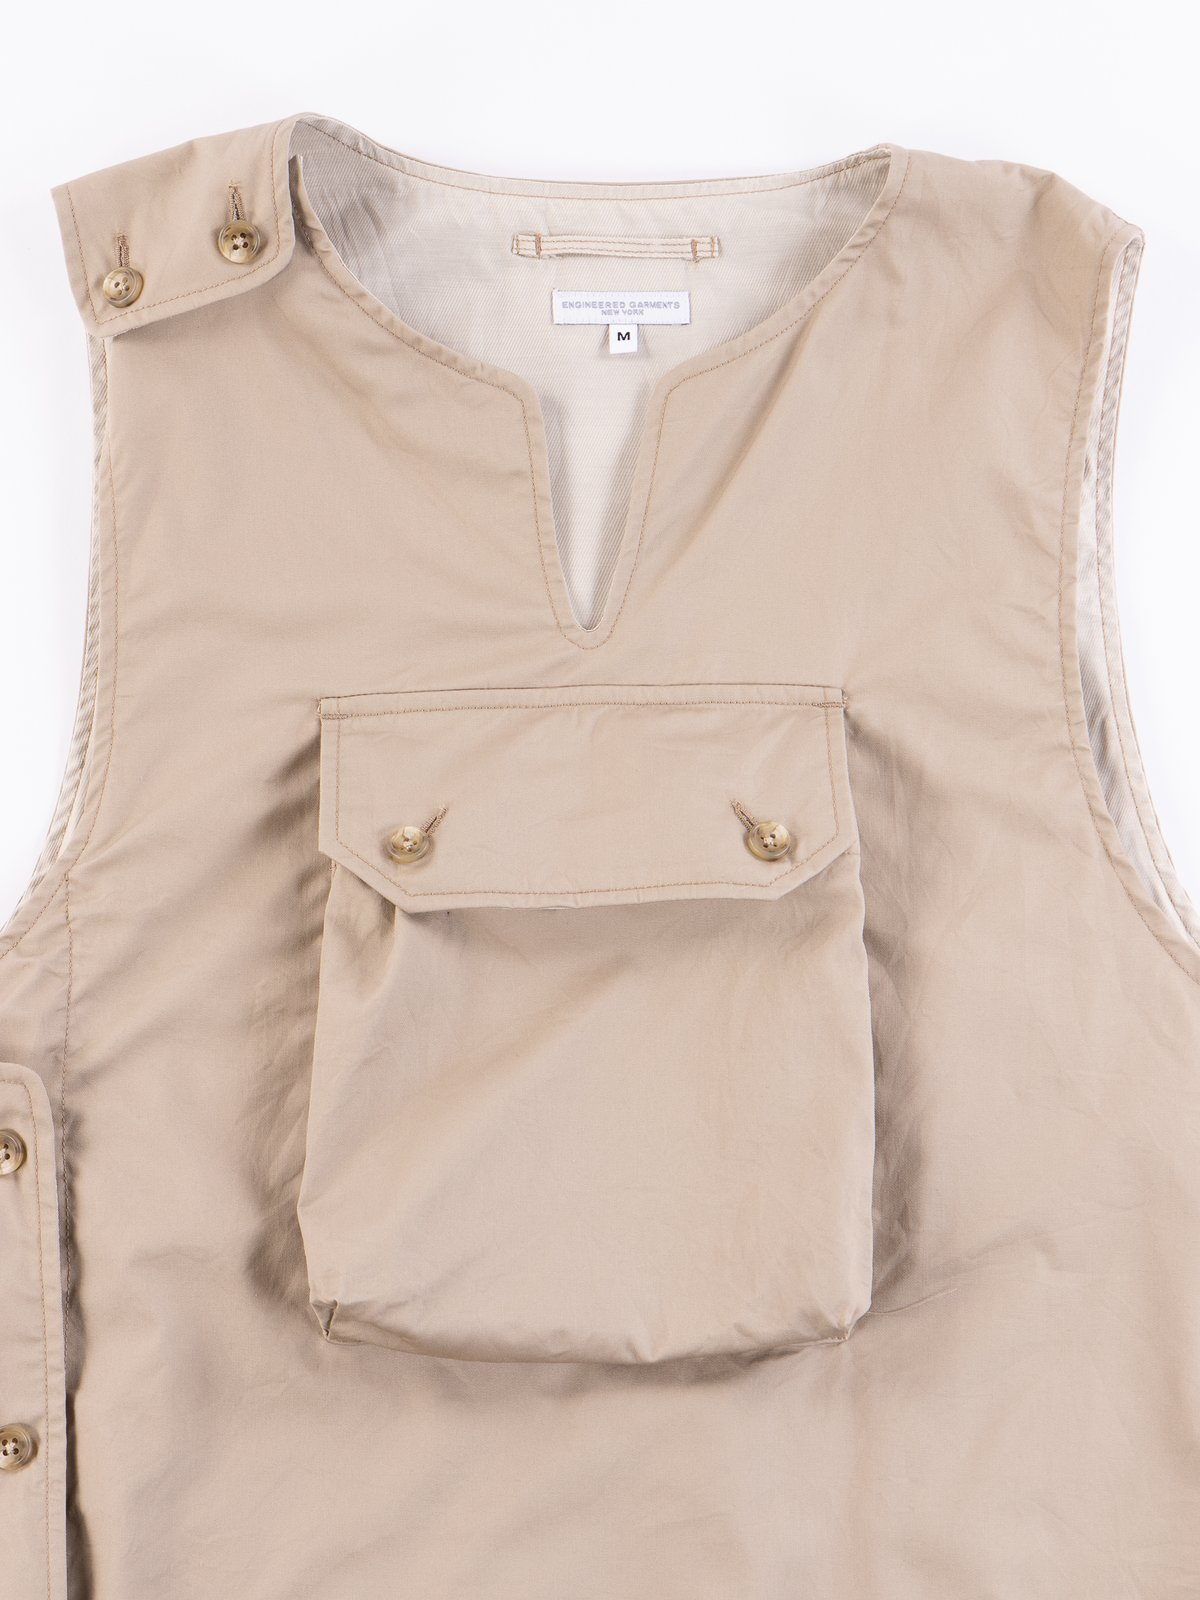 Khaki High Count Twill Cover Vest - Image 3